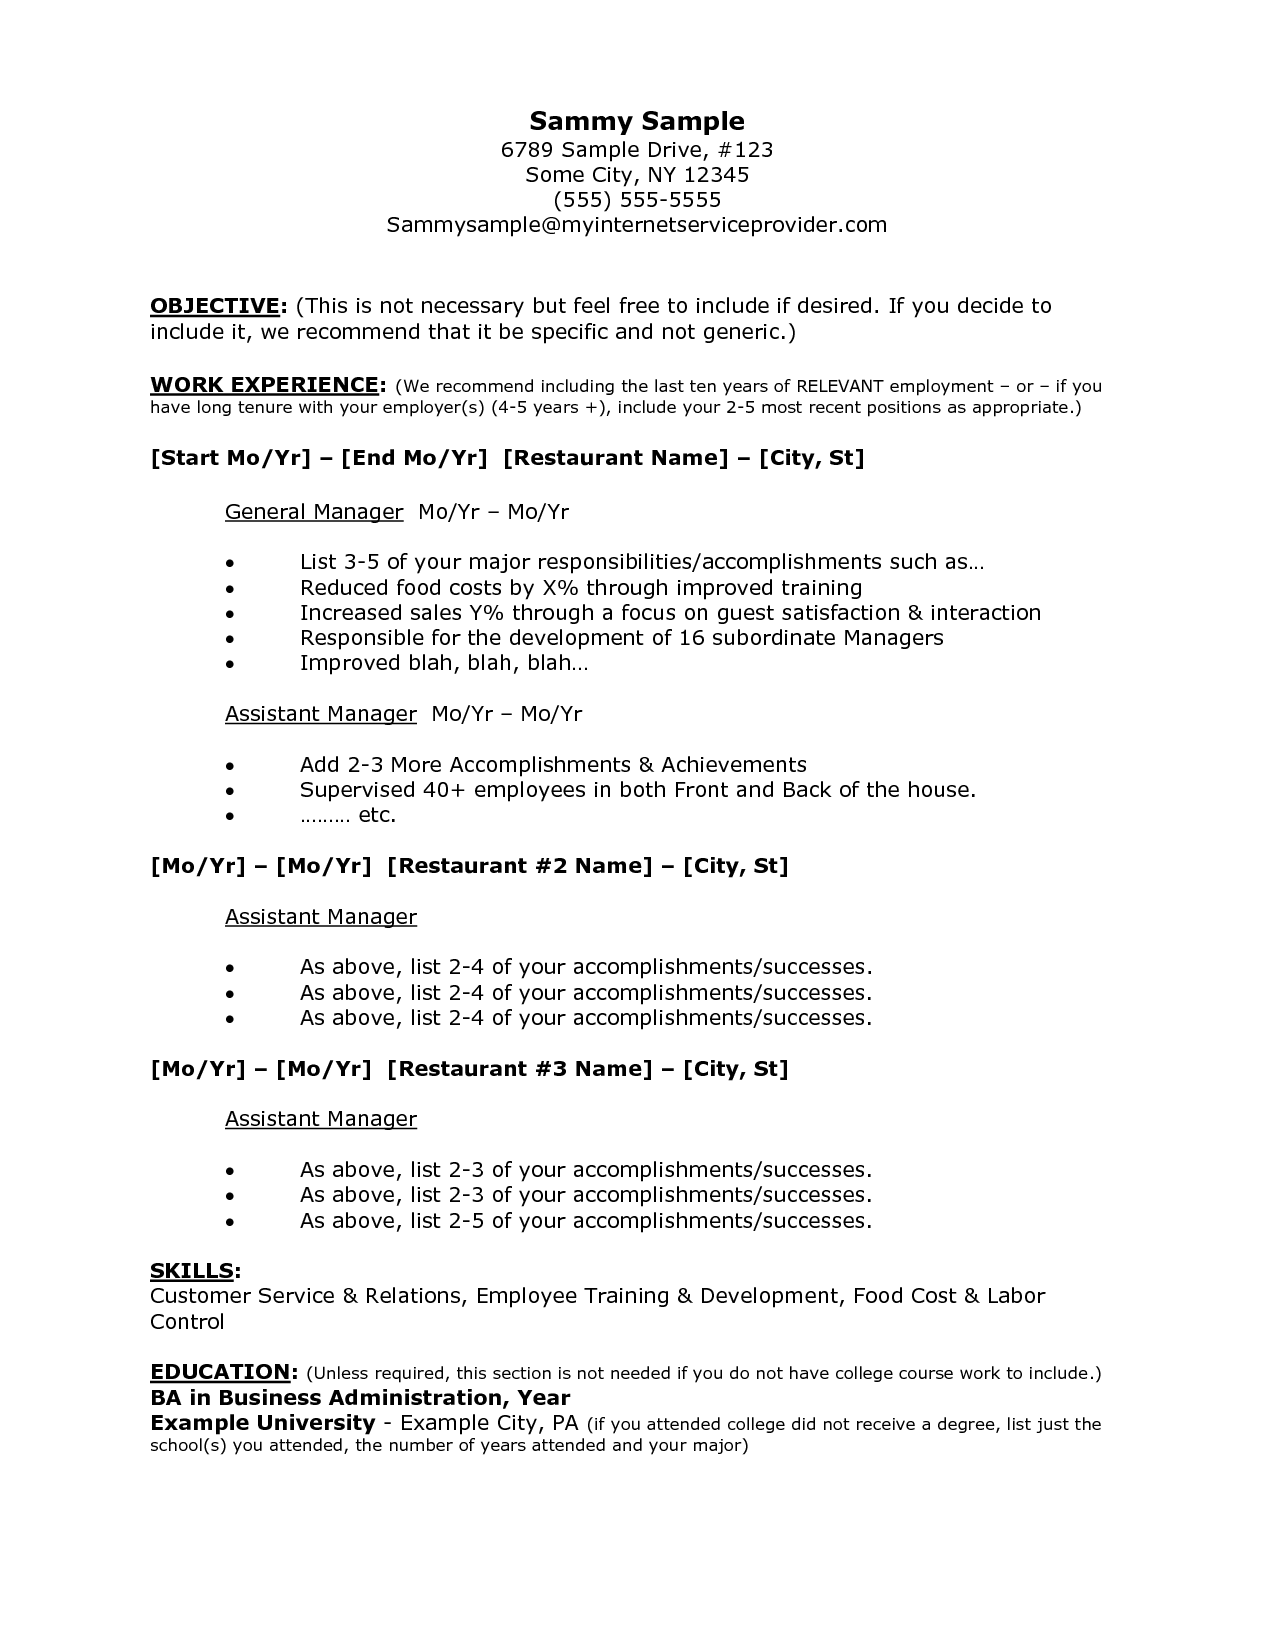 Restaurant Worker Resume - http://www.resumecareer.info/restaurant ...